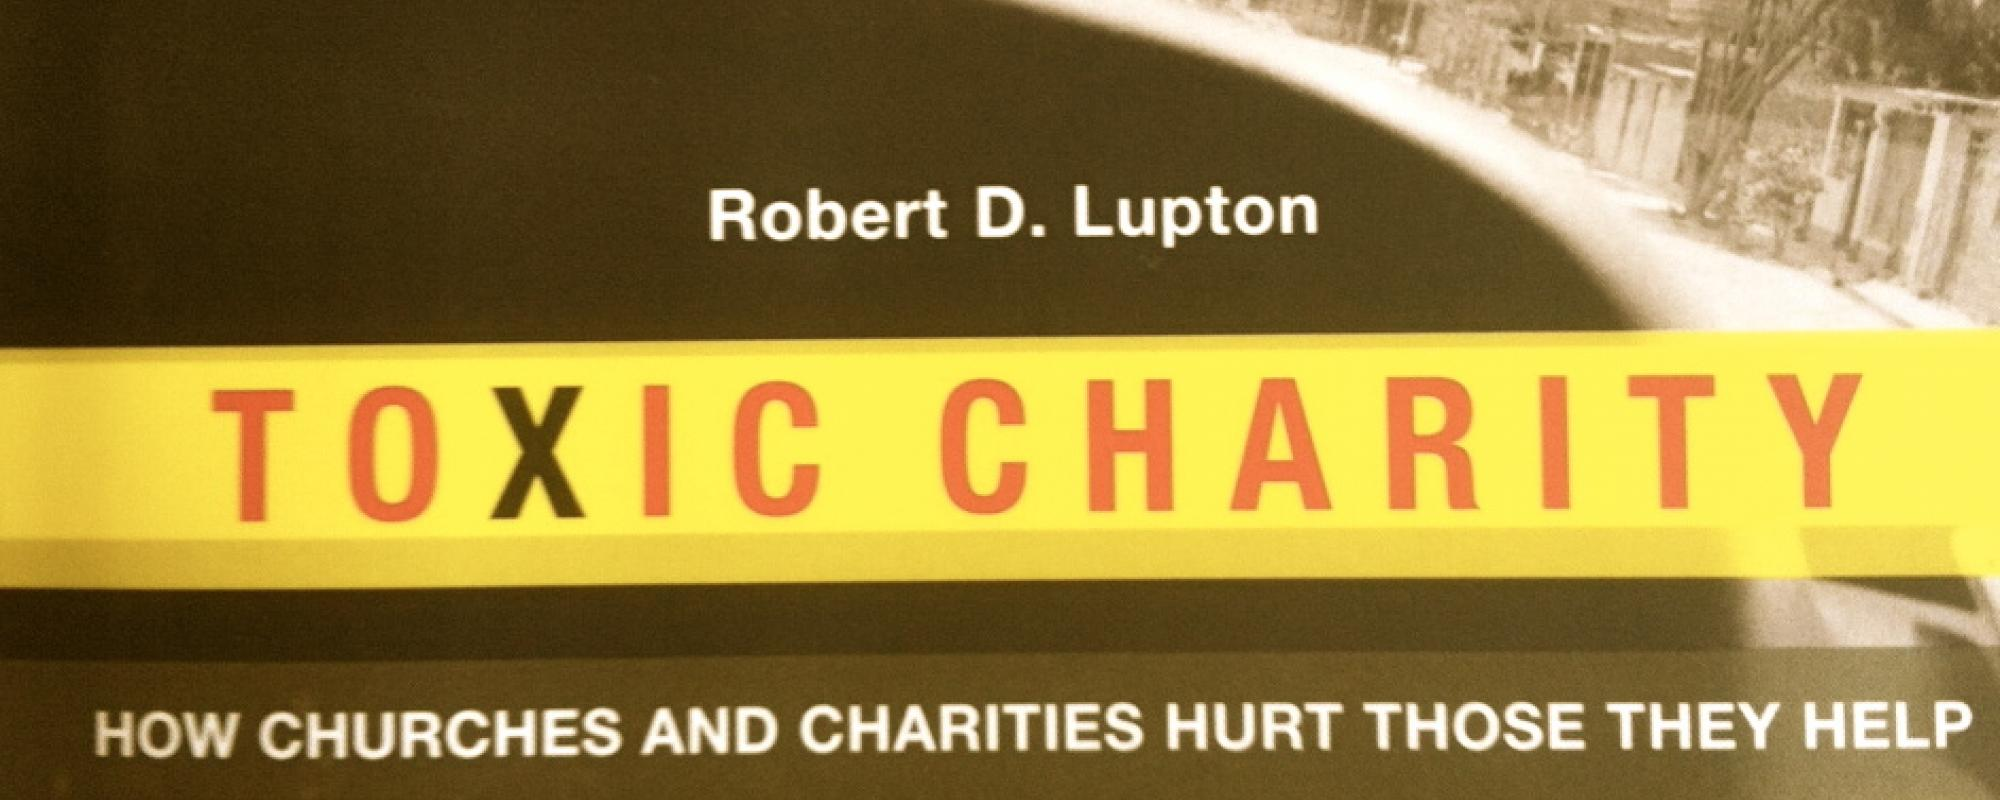 Toxic Charity, how churches and charities hurt those they help